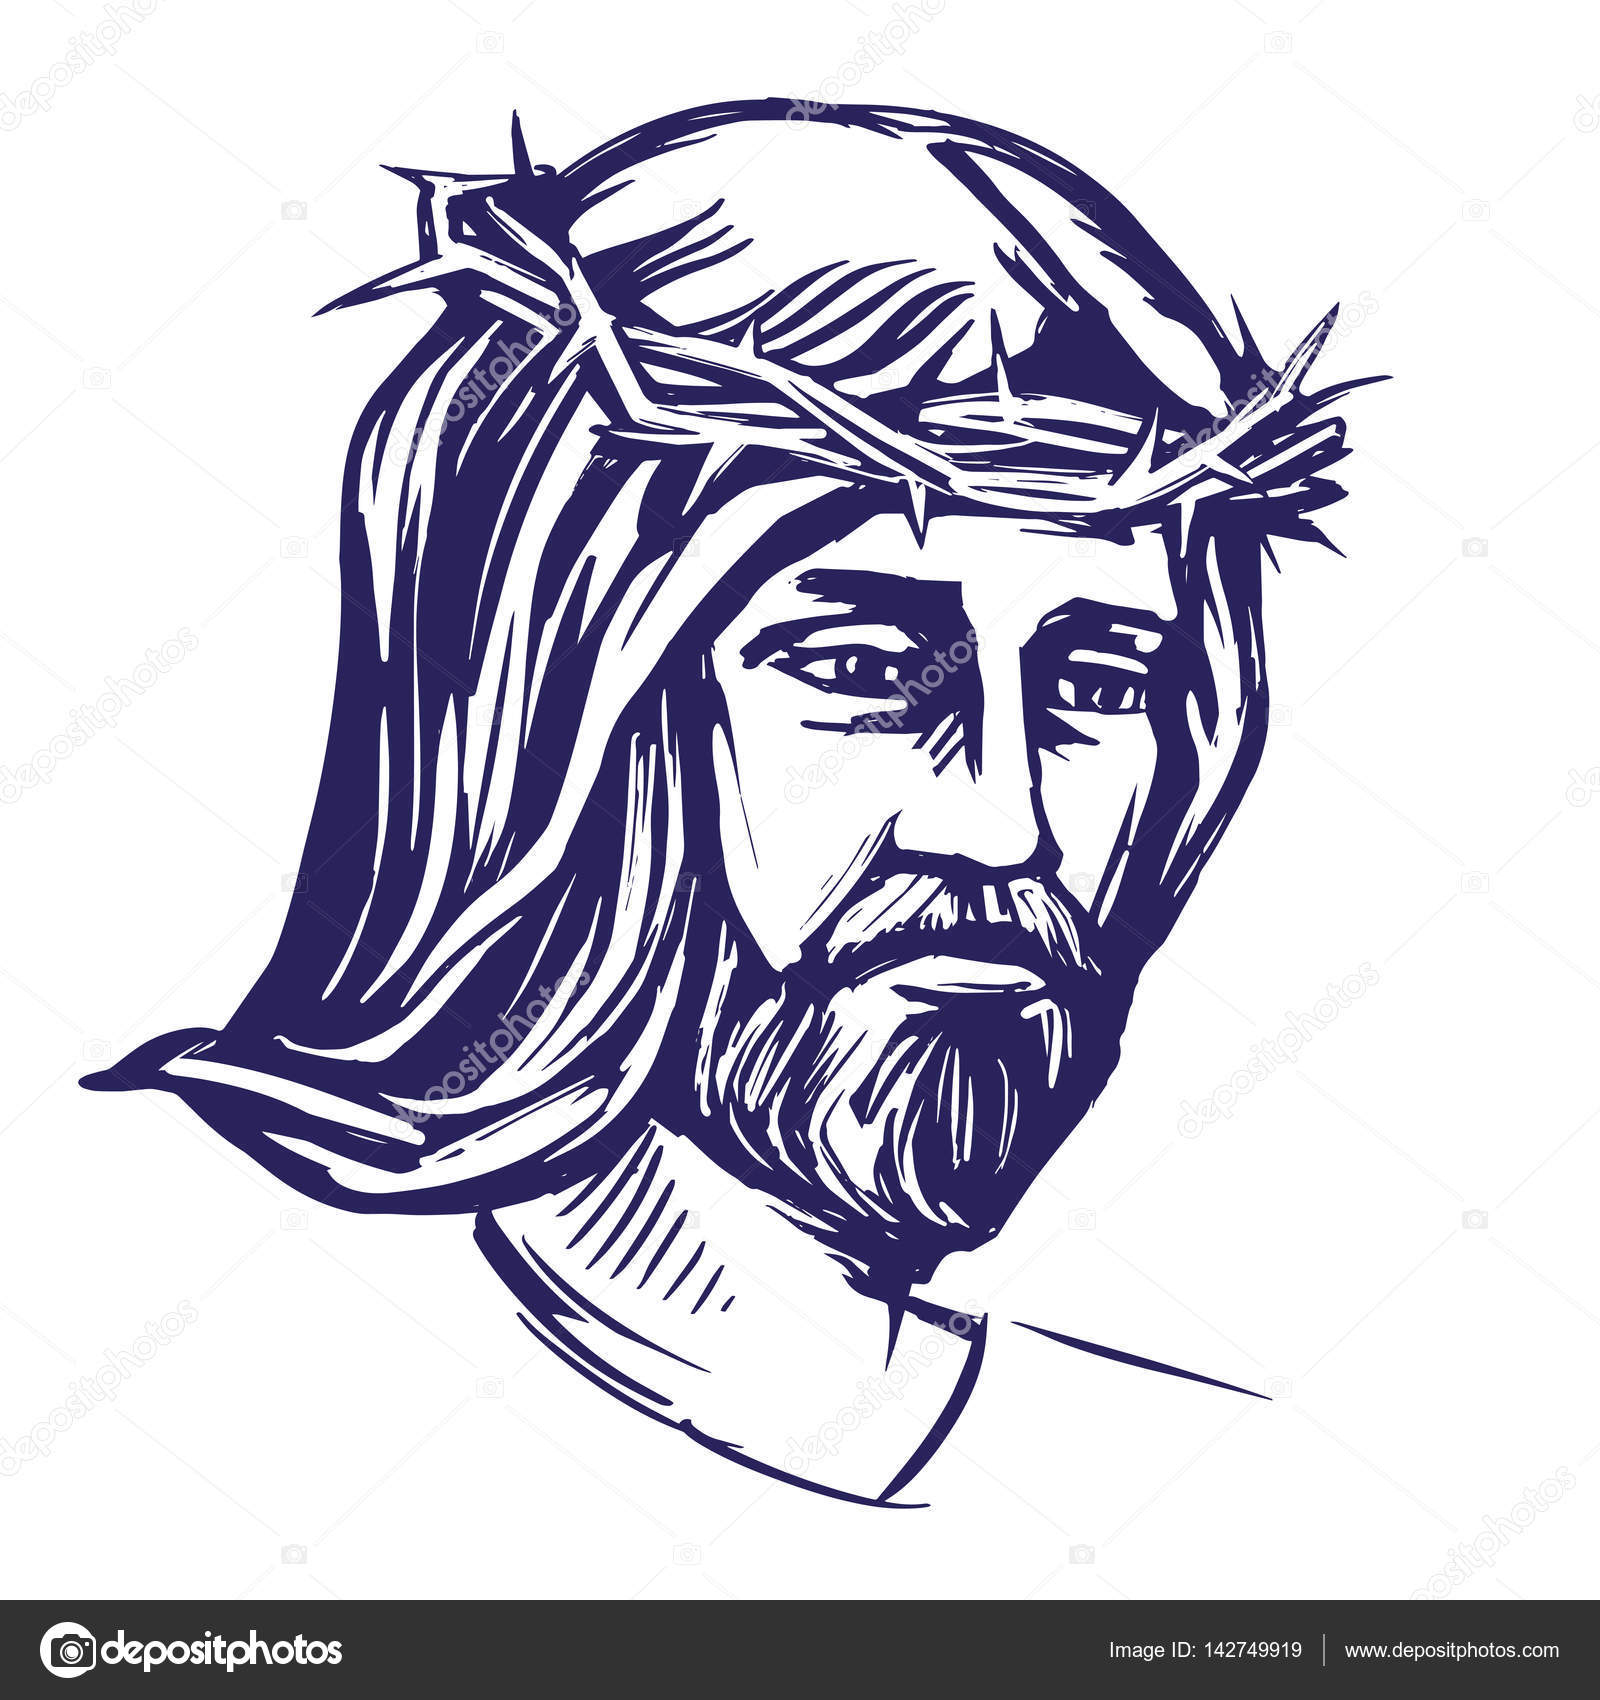 1600x1700 Jesus Christ, The Son Of God In Crown Of Thorns On His Head,